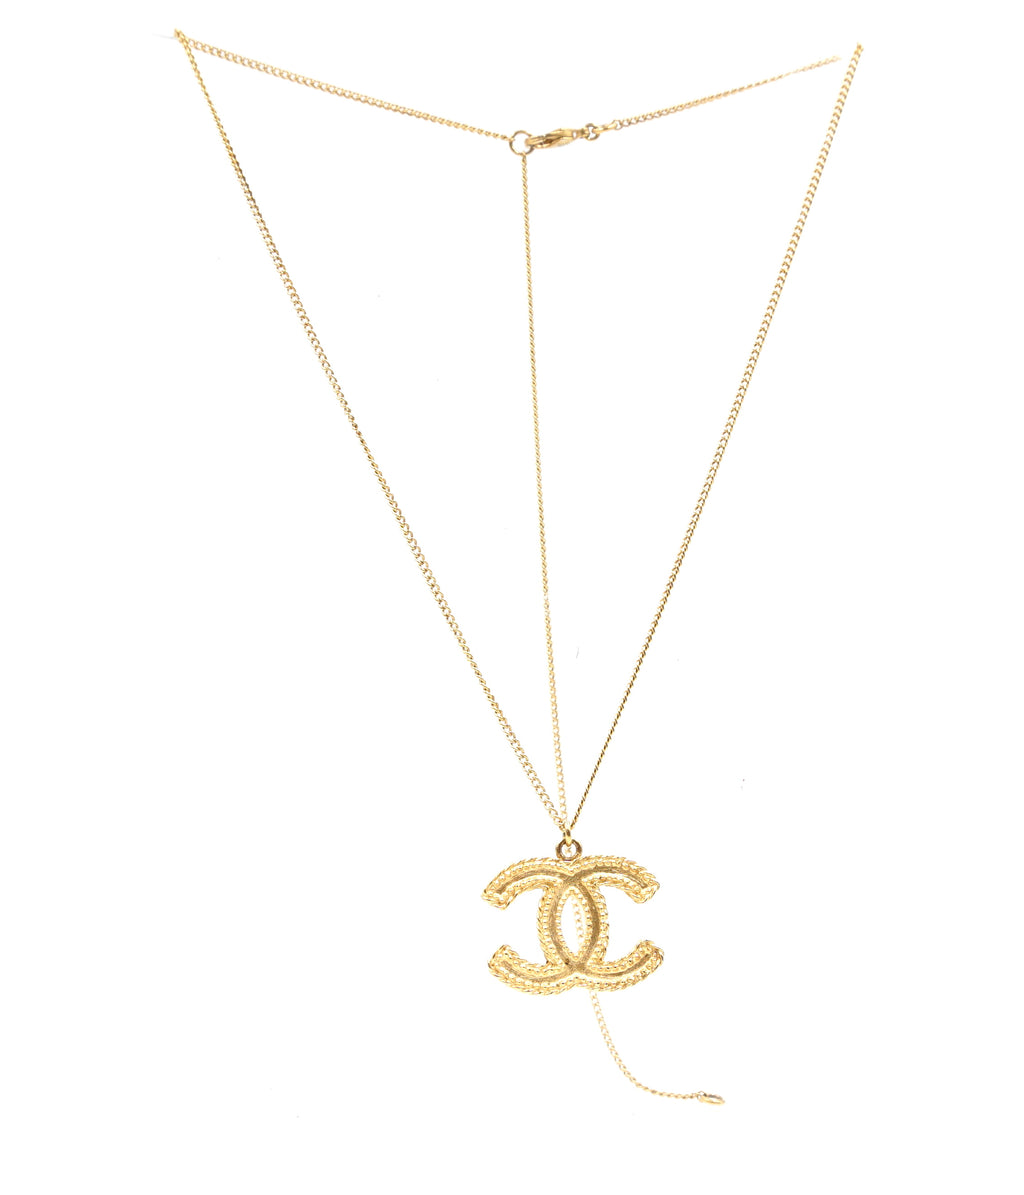 Chanel CC Textured Chain Choker Necklace